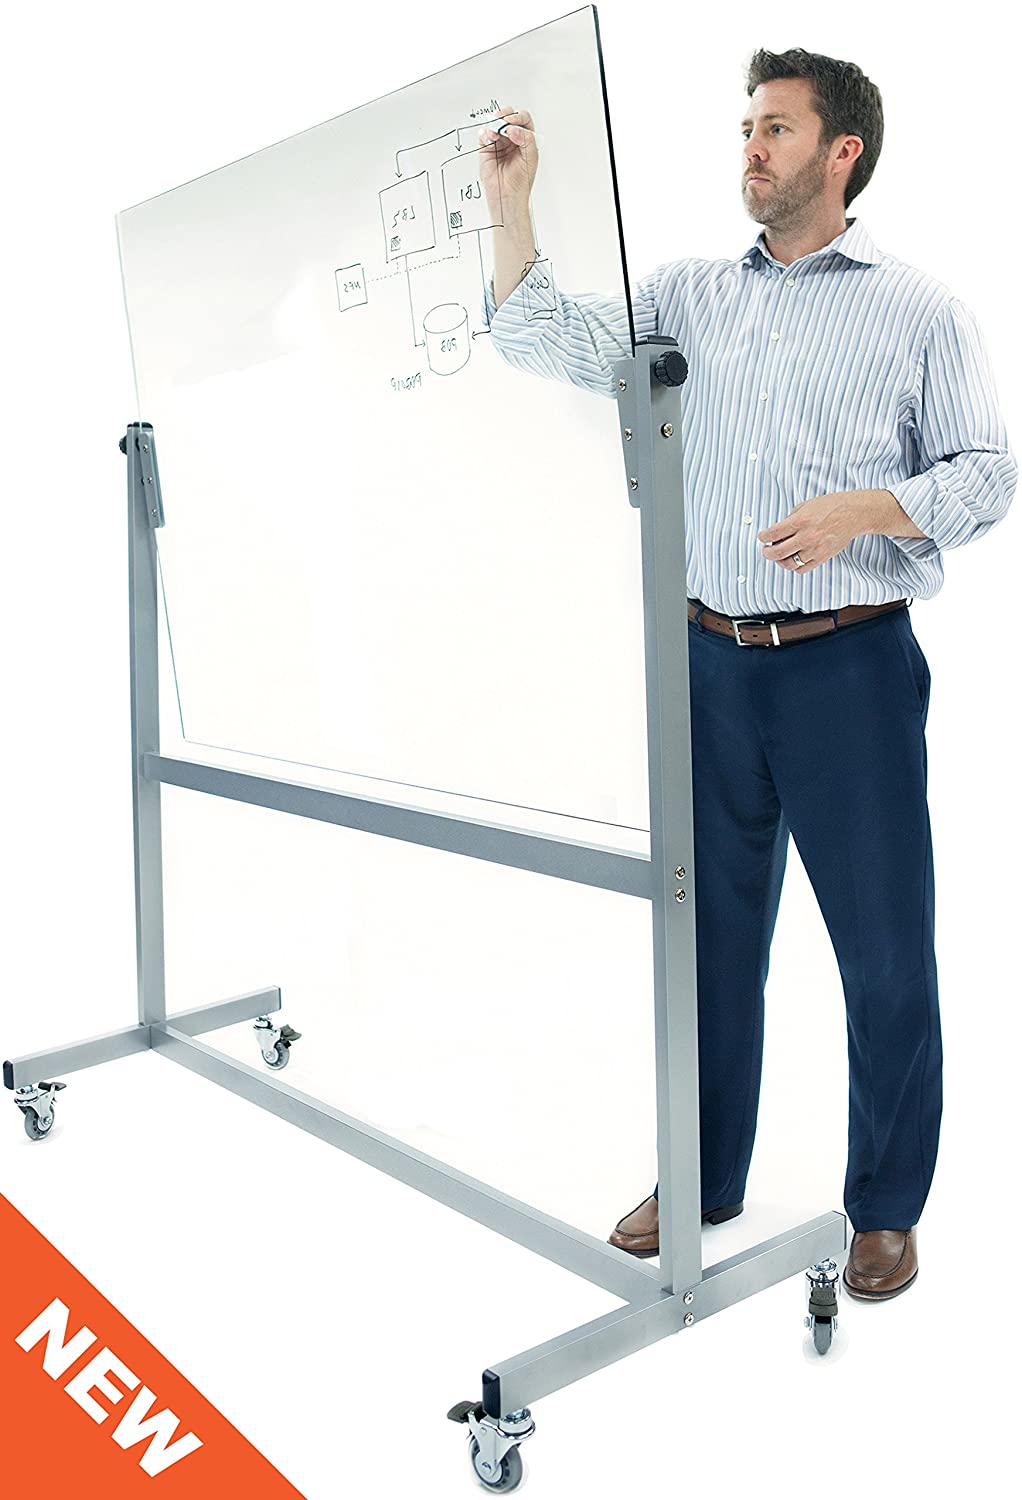 Glass Dry Erase Boards Dry Erase Boards